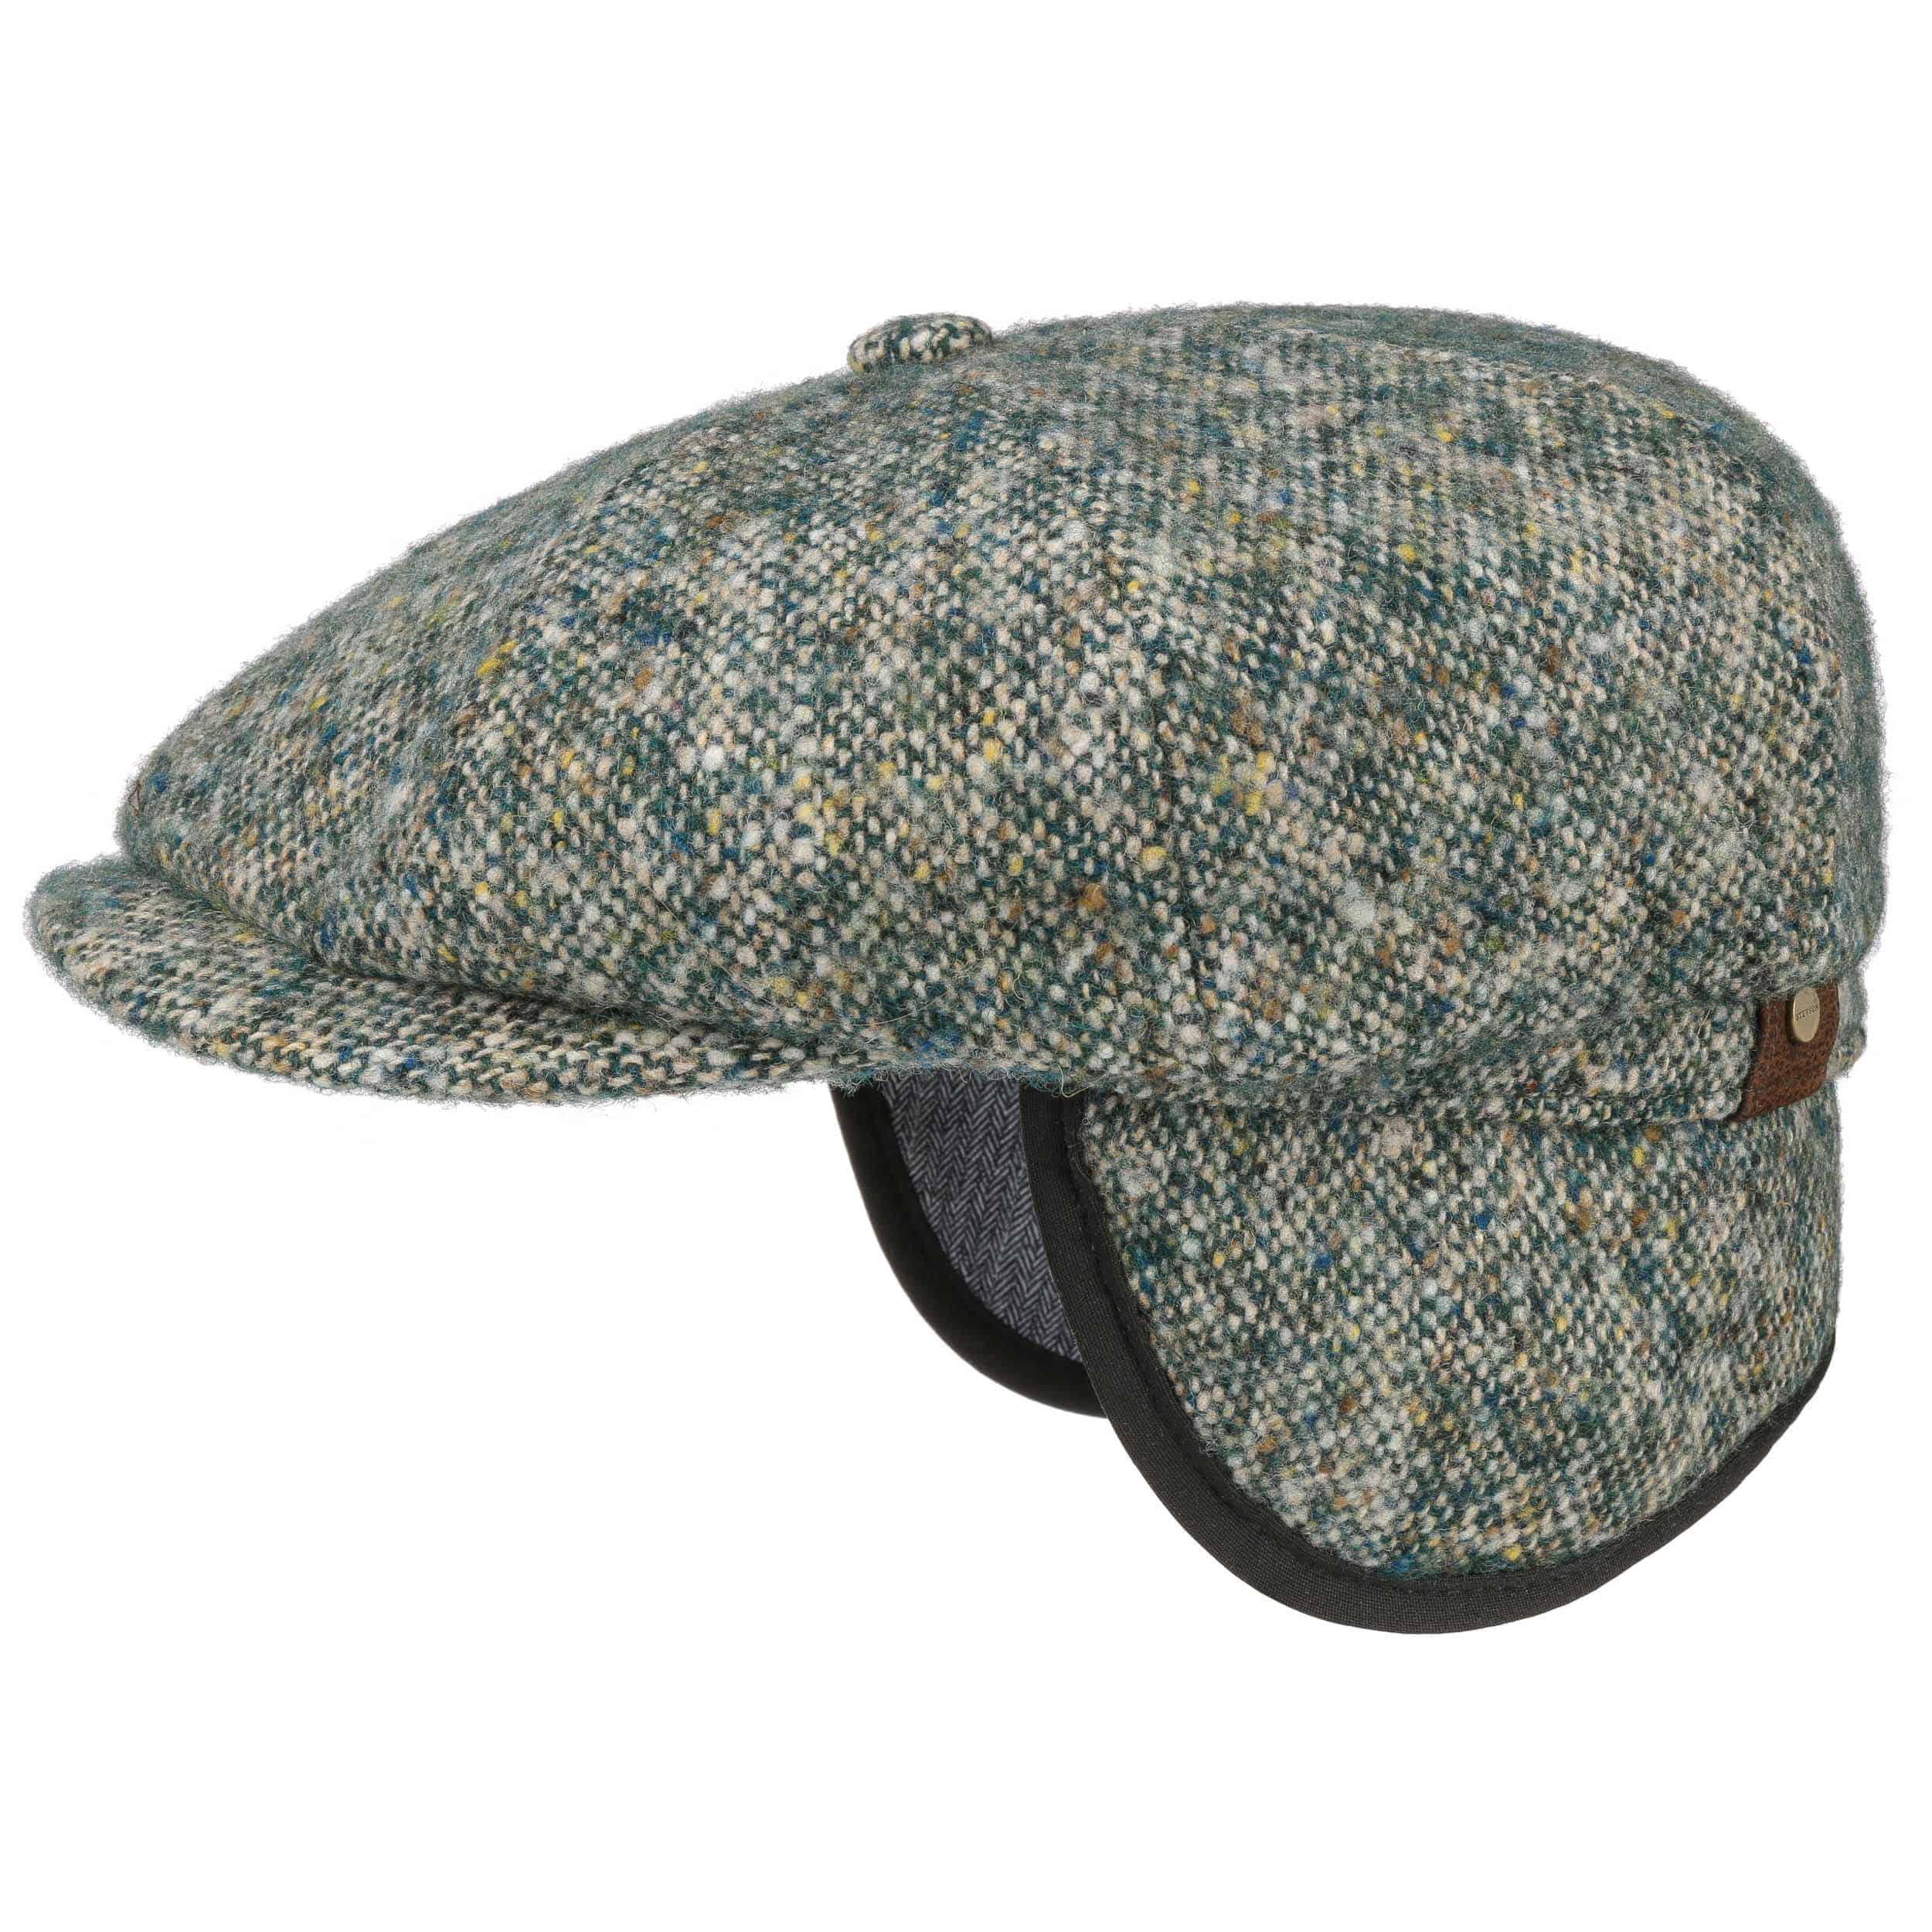 19464cd29bb09 Hatteras Donegal Earflaps Cap by Stetson